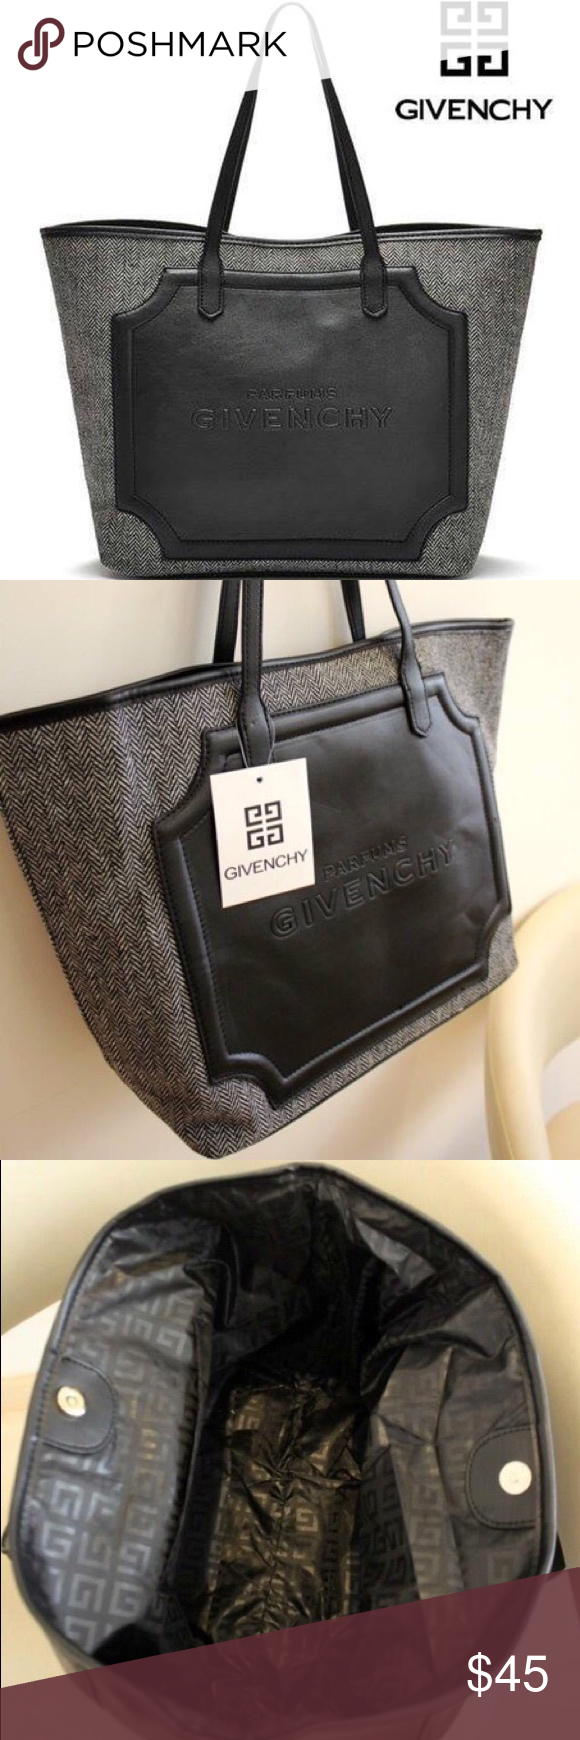 Black Vip Grey Gift Tote Faux Givenchy 100 Bag New Leather HWDY9EI2